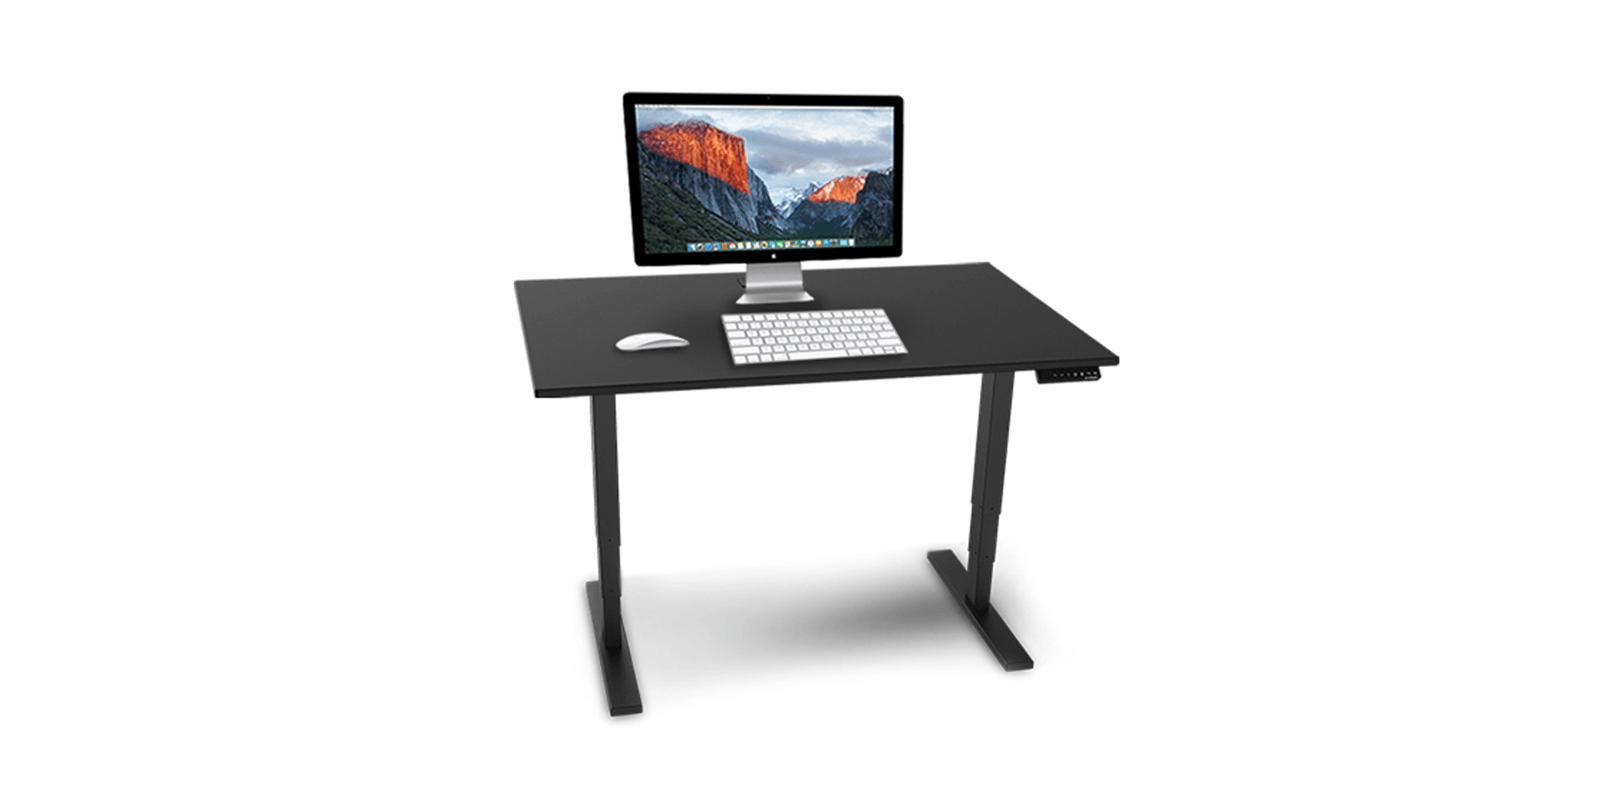 Boost productivity with The Thunderbolt Workstation giveaway